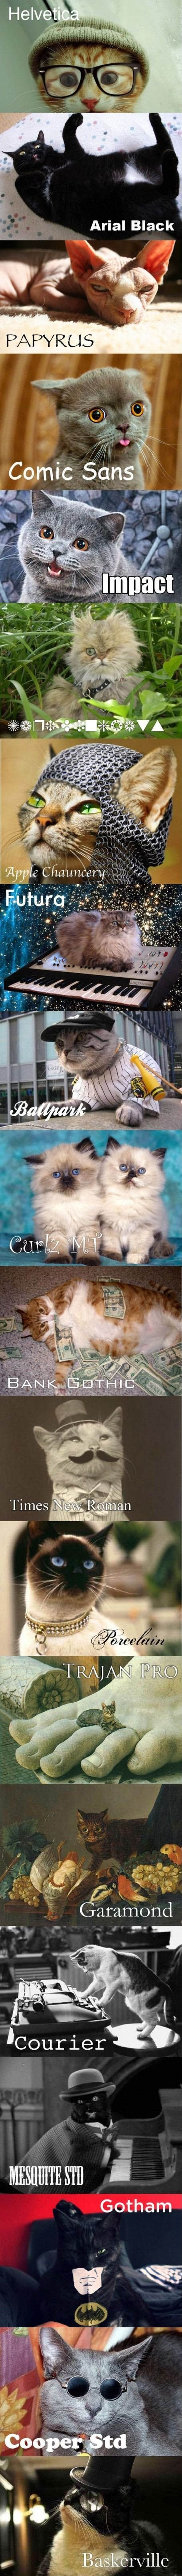 LOLLaugh, Stuff, Cat Fonts, Awesome, Funny, Humor, Things, Kitty, Animal